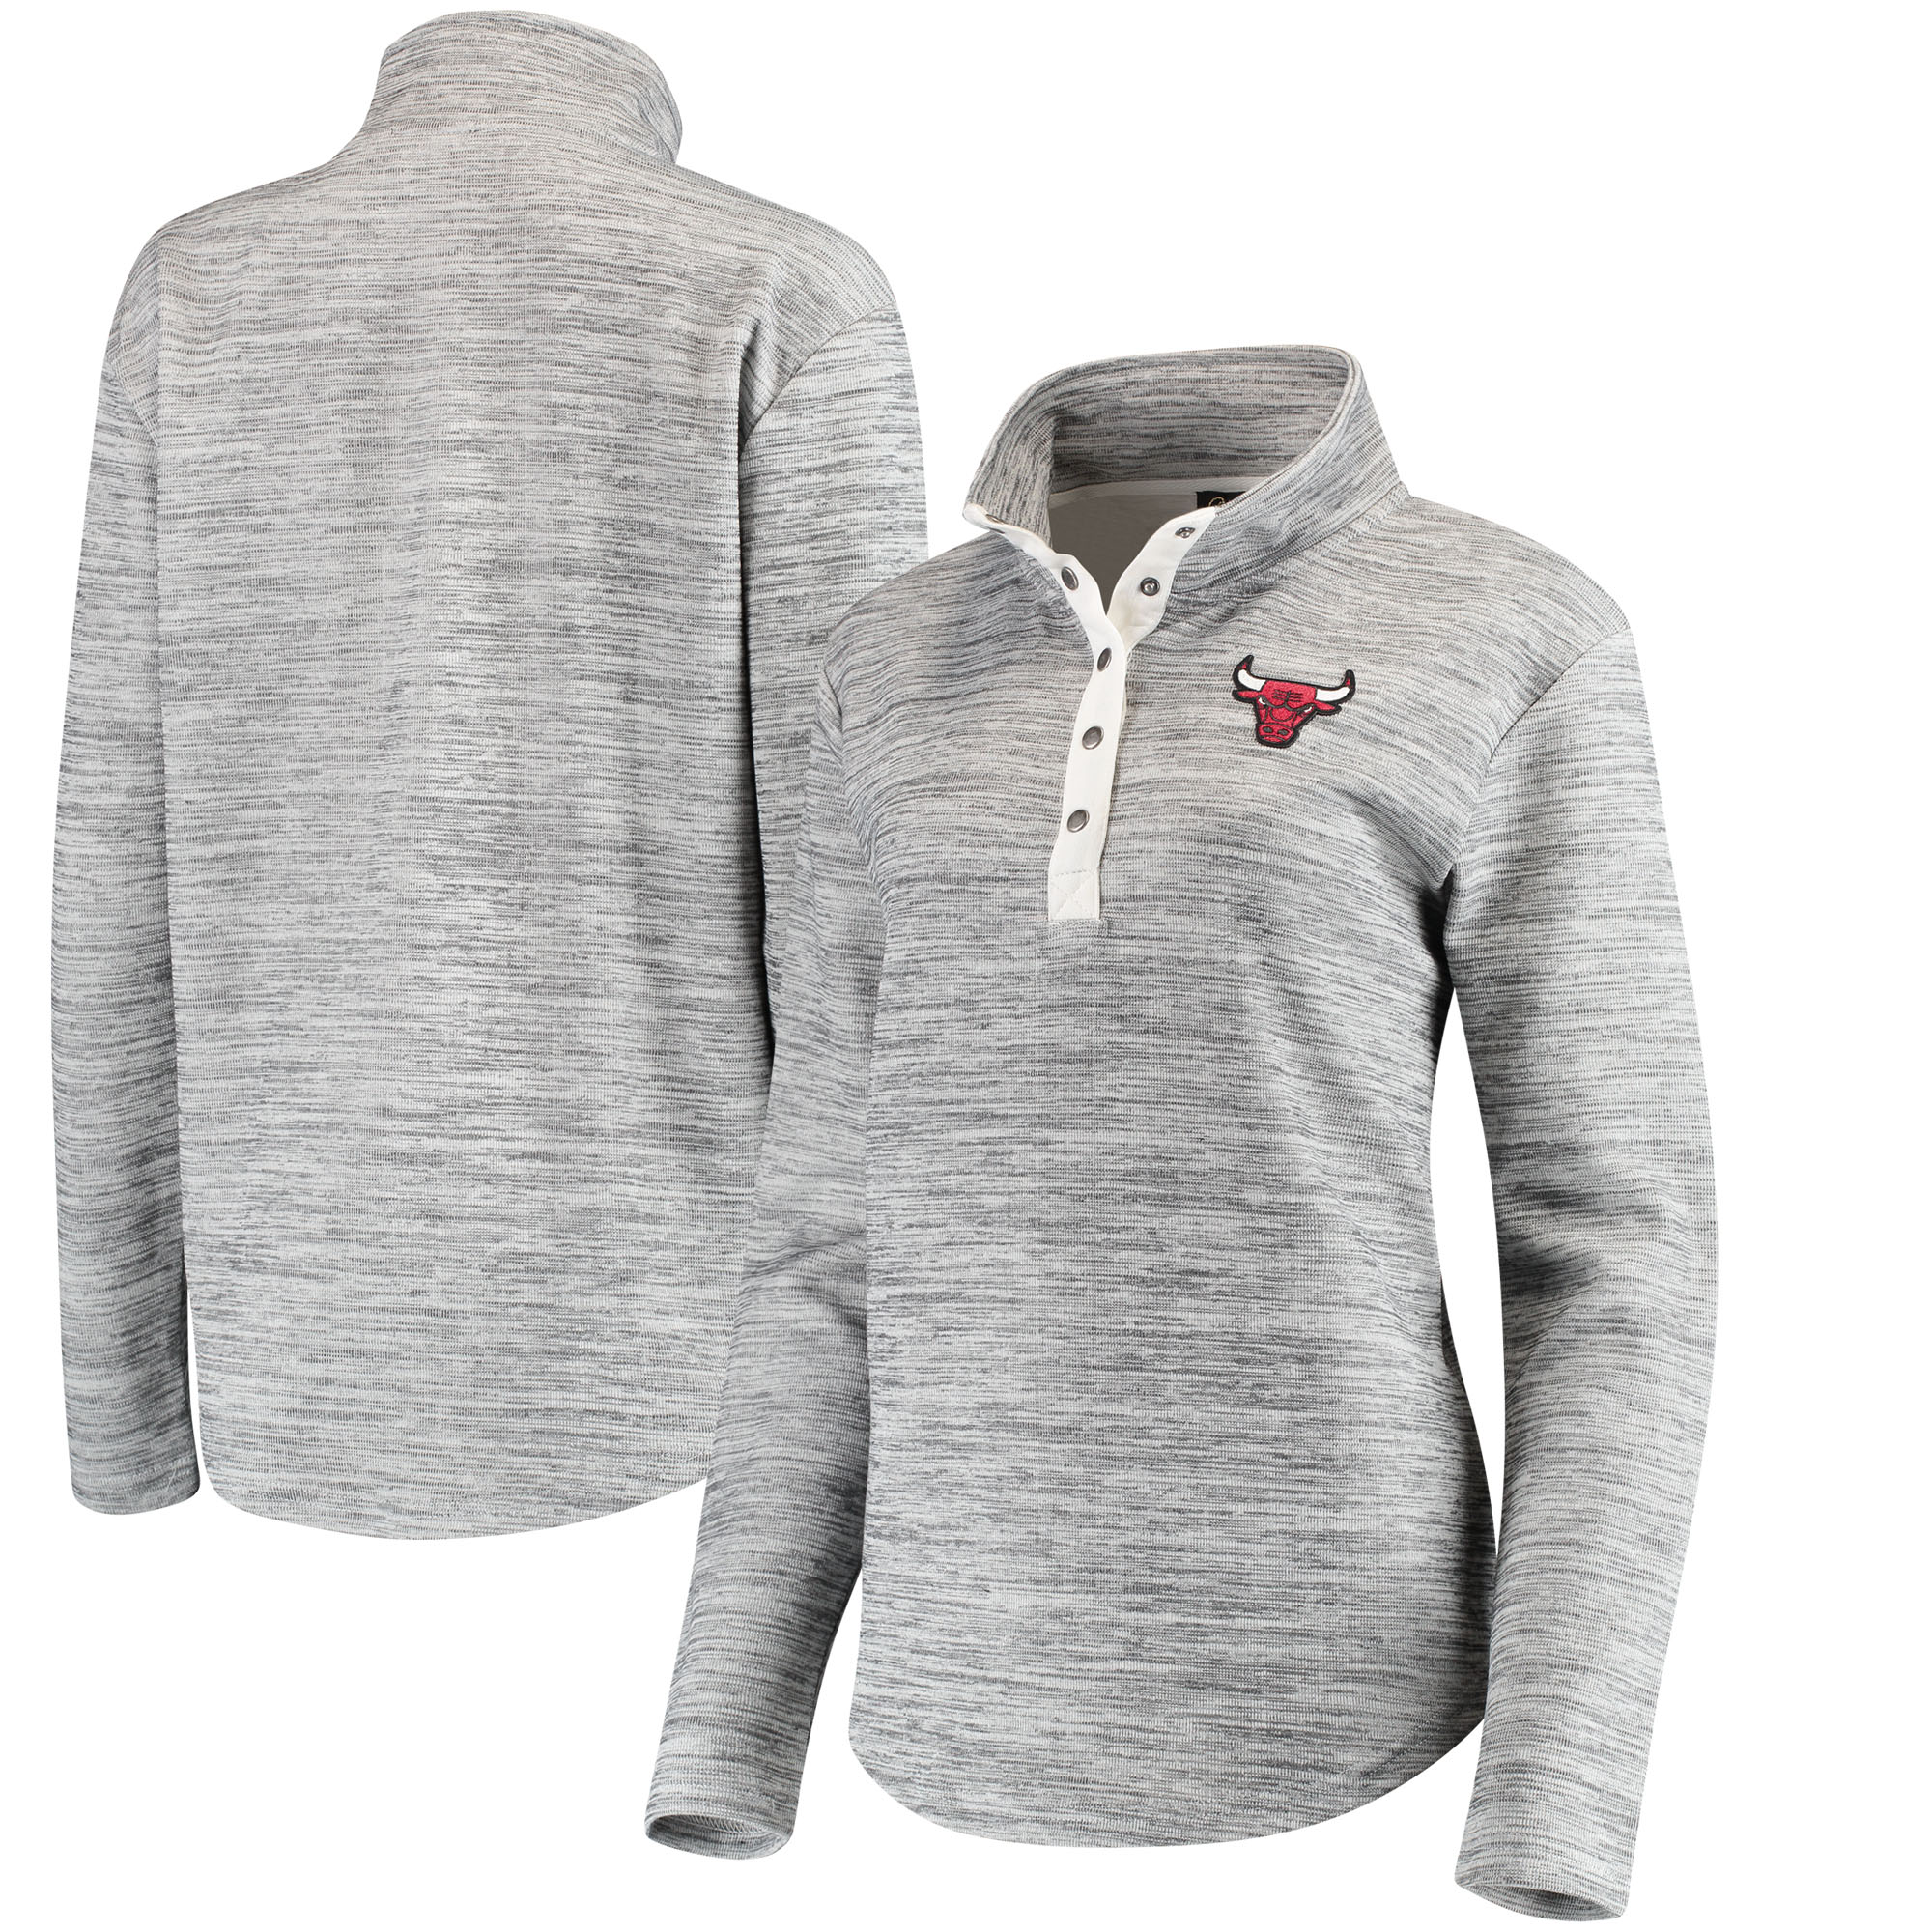 Chicago Bulls Women's Half-Snap Slub Pullover Sweatshirt - Heathered Gray